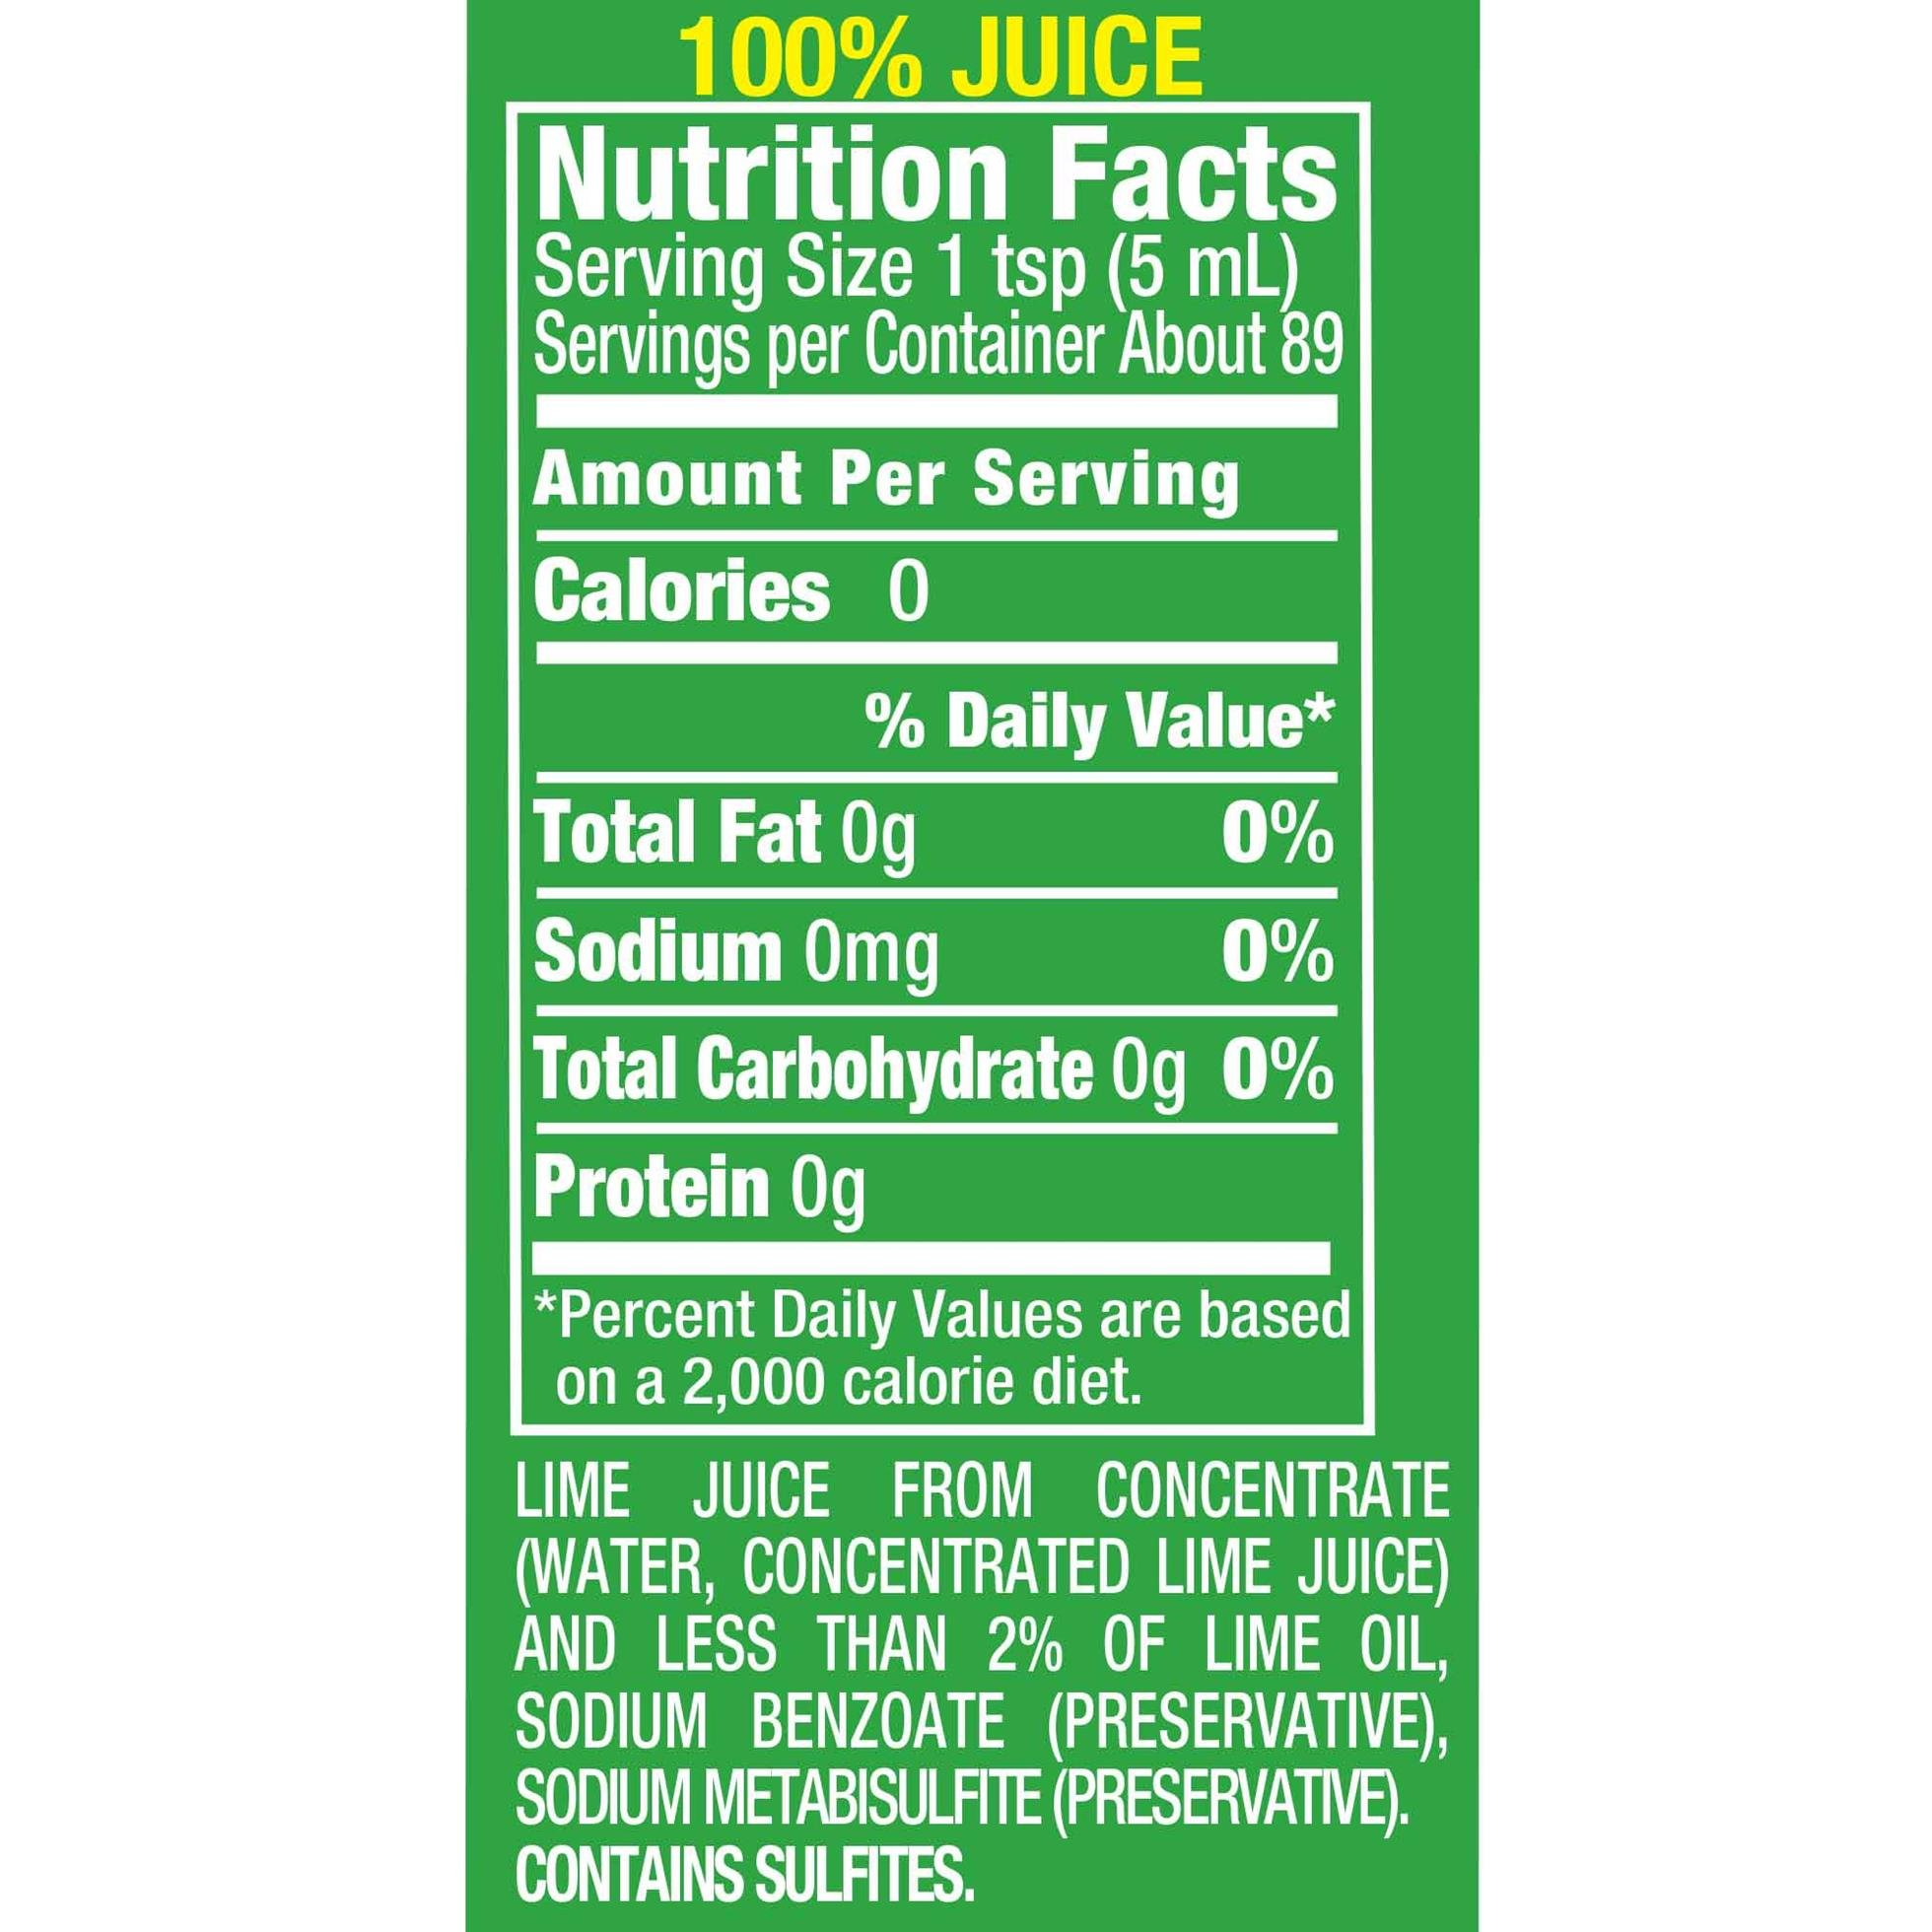 ReaLime 100% Lime Juice, 15 Fluid Ounce Bottle (Pack of 12) by Realime (Image #2)